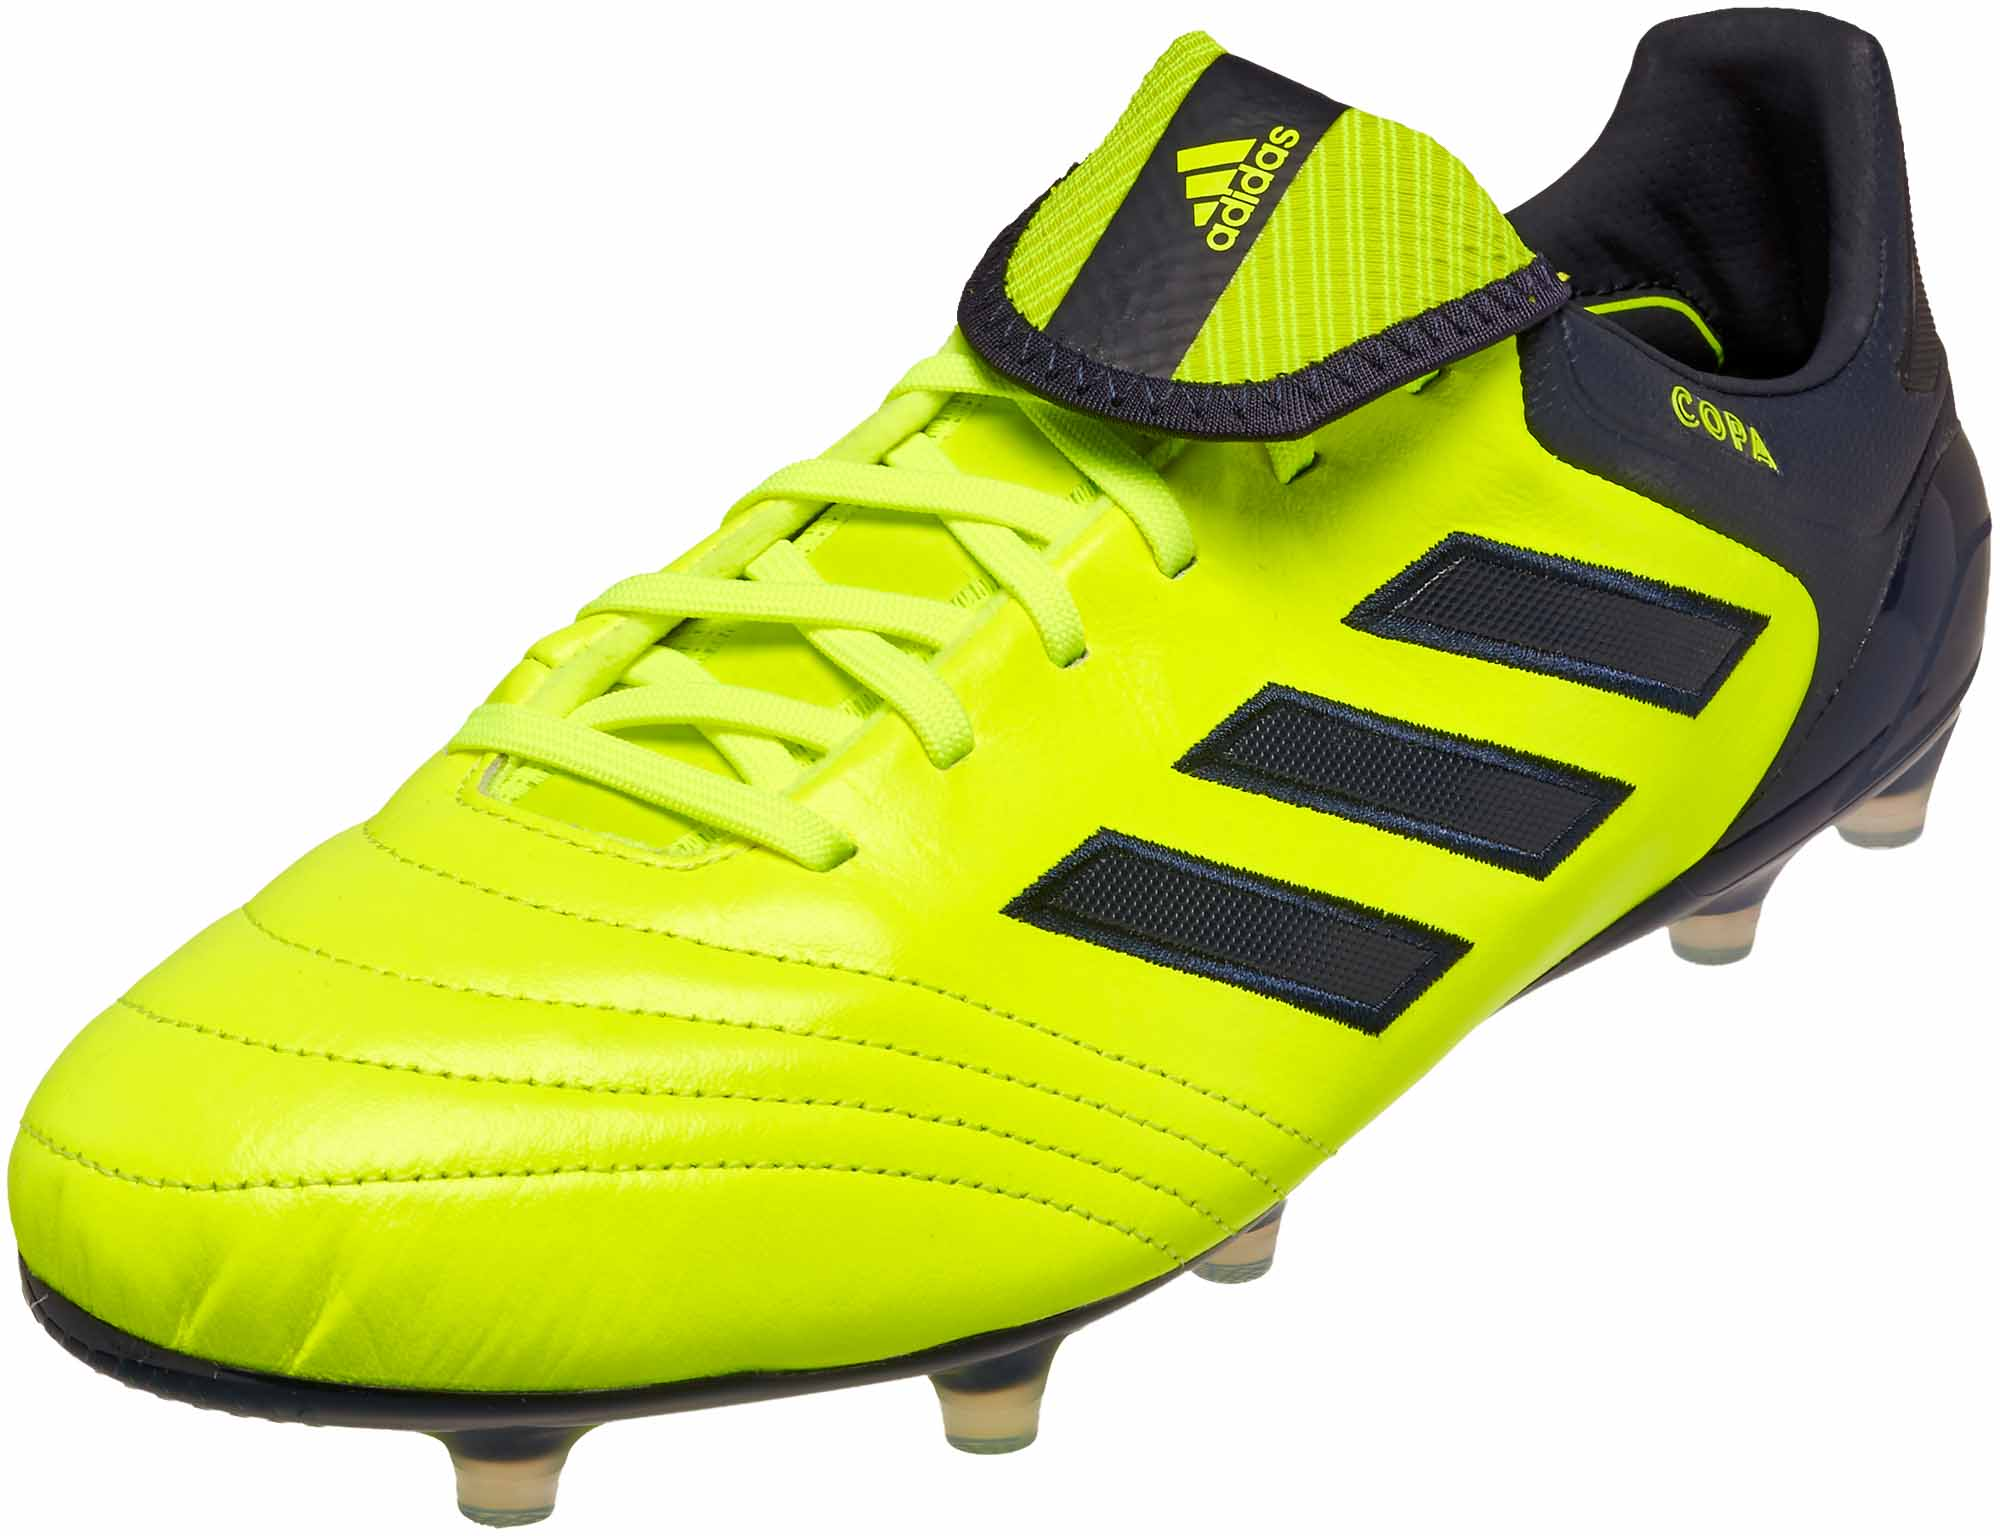 d942c9fa3076 adidas Copa 17.1 FG Soccer Shoes - adidas Soccer Cleats